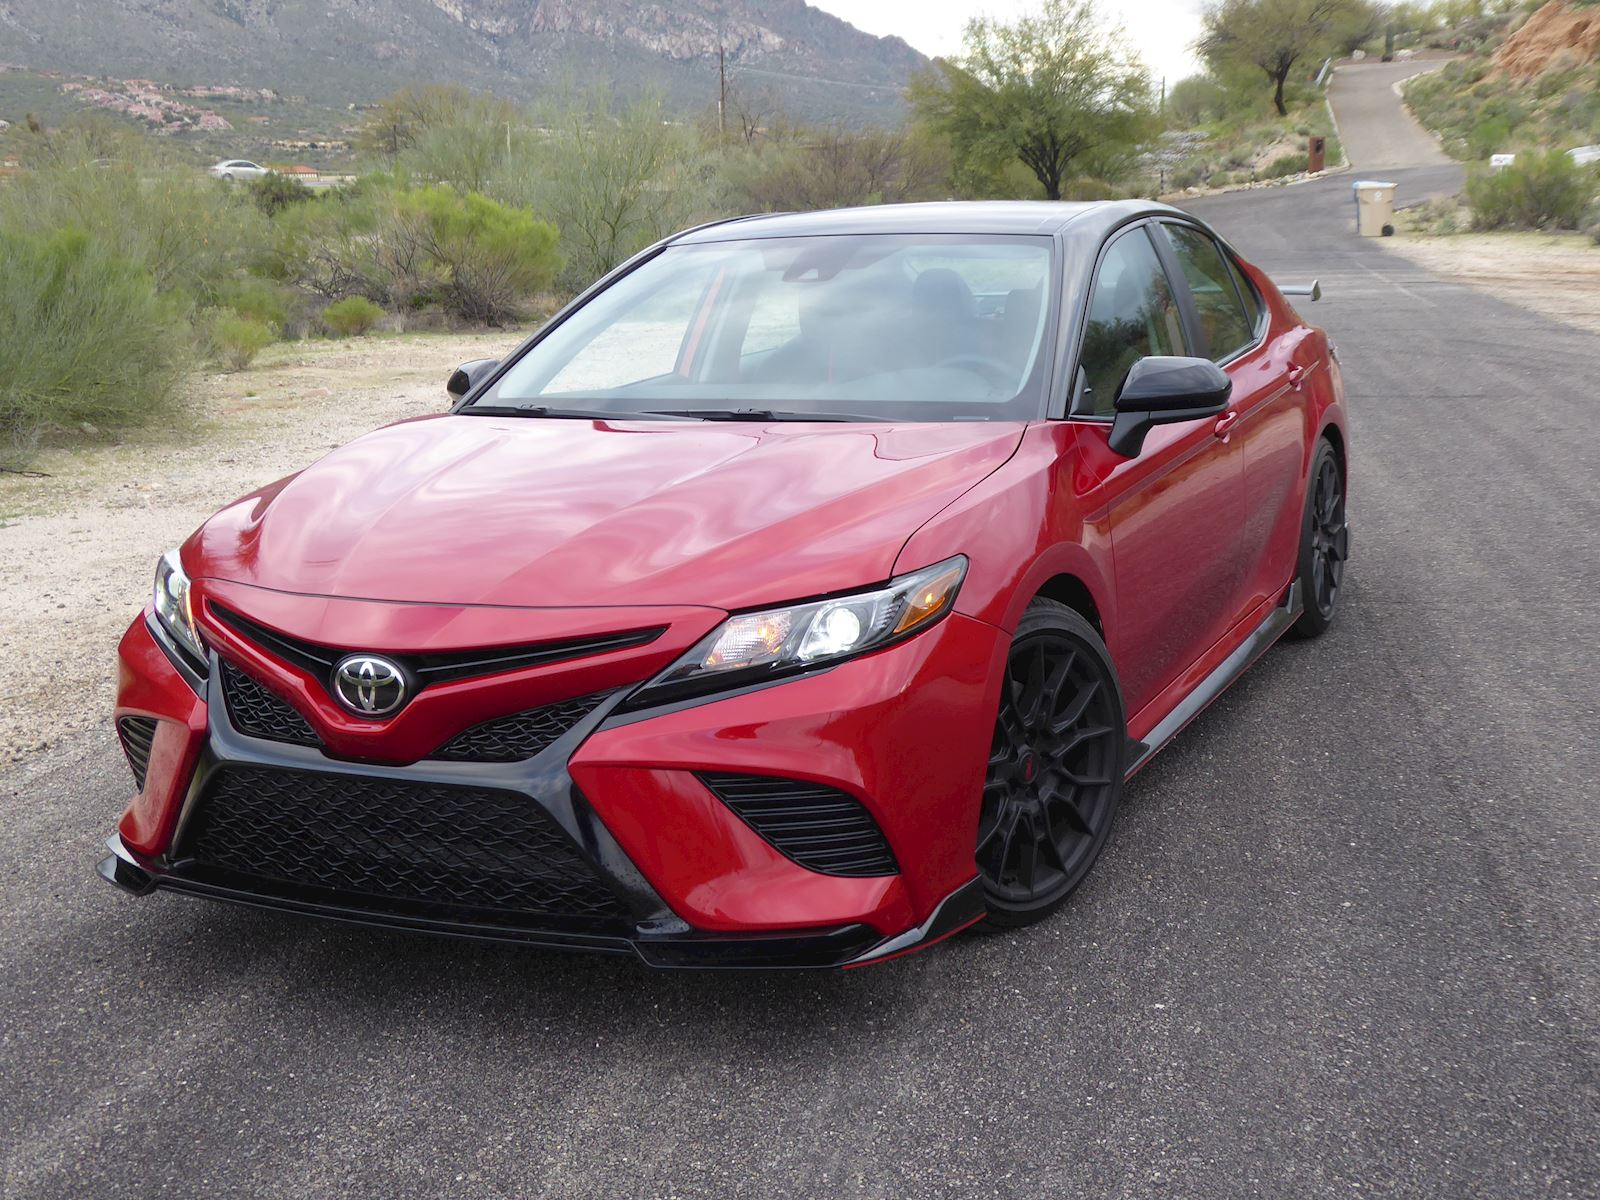 2020 Toyota Camry TRD front view